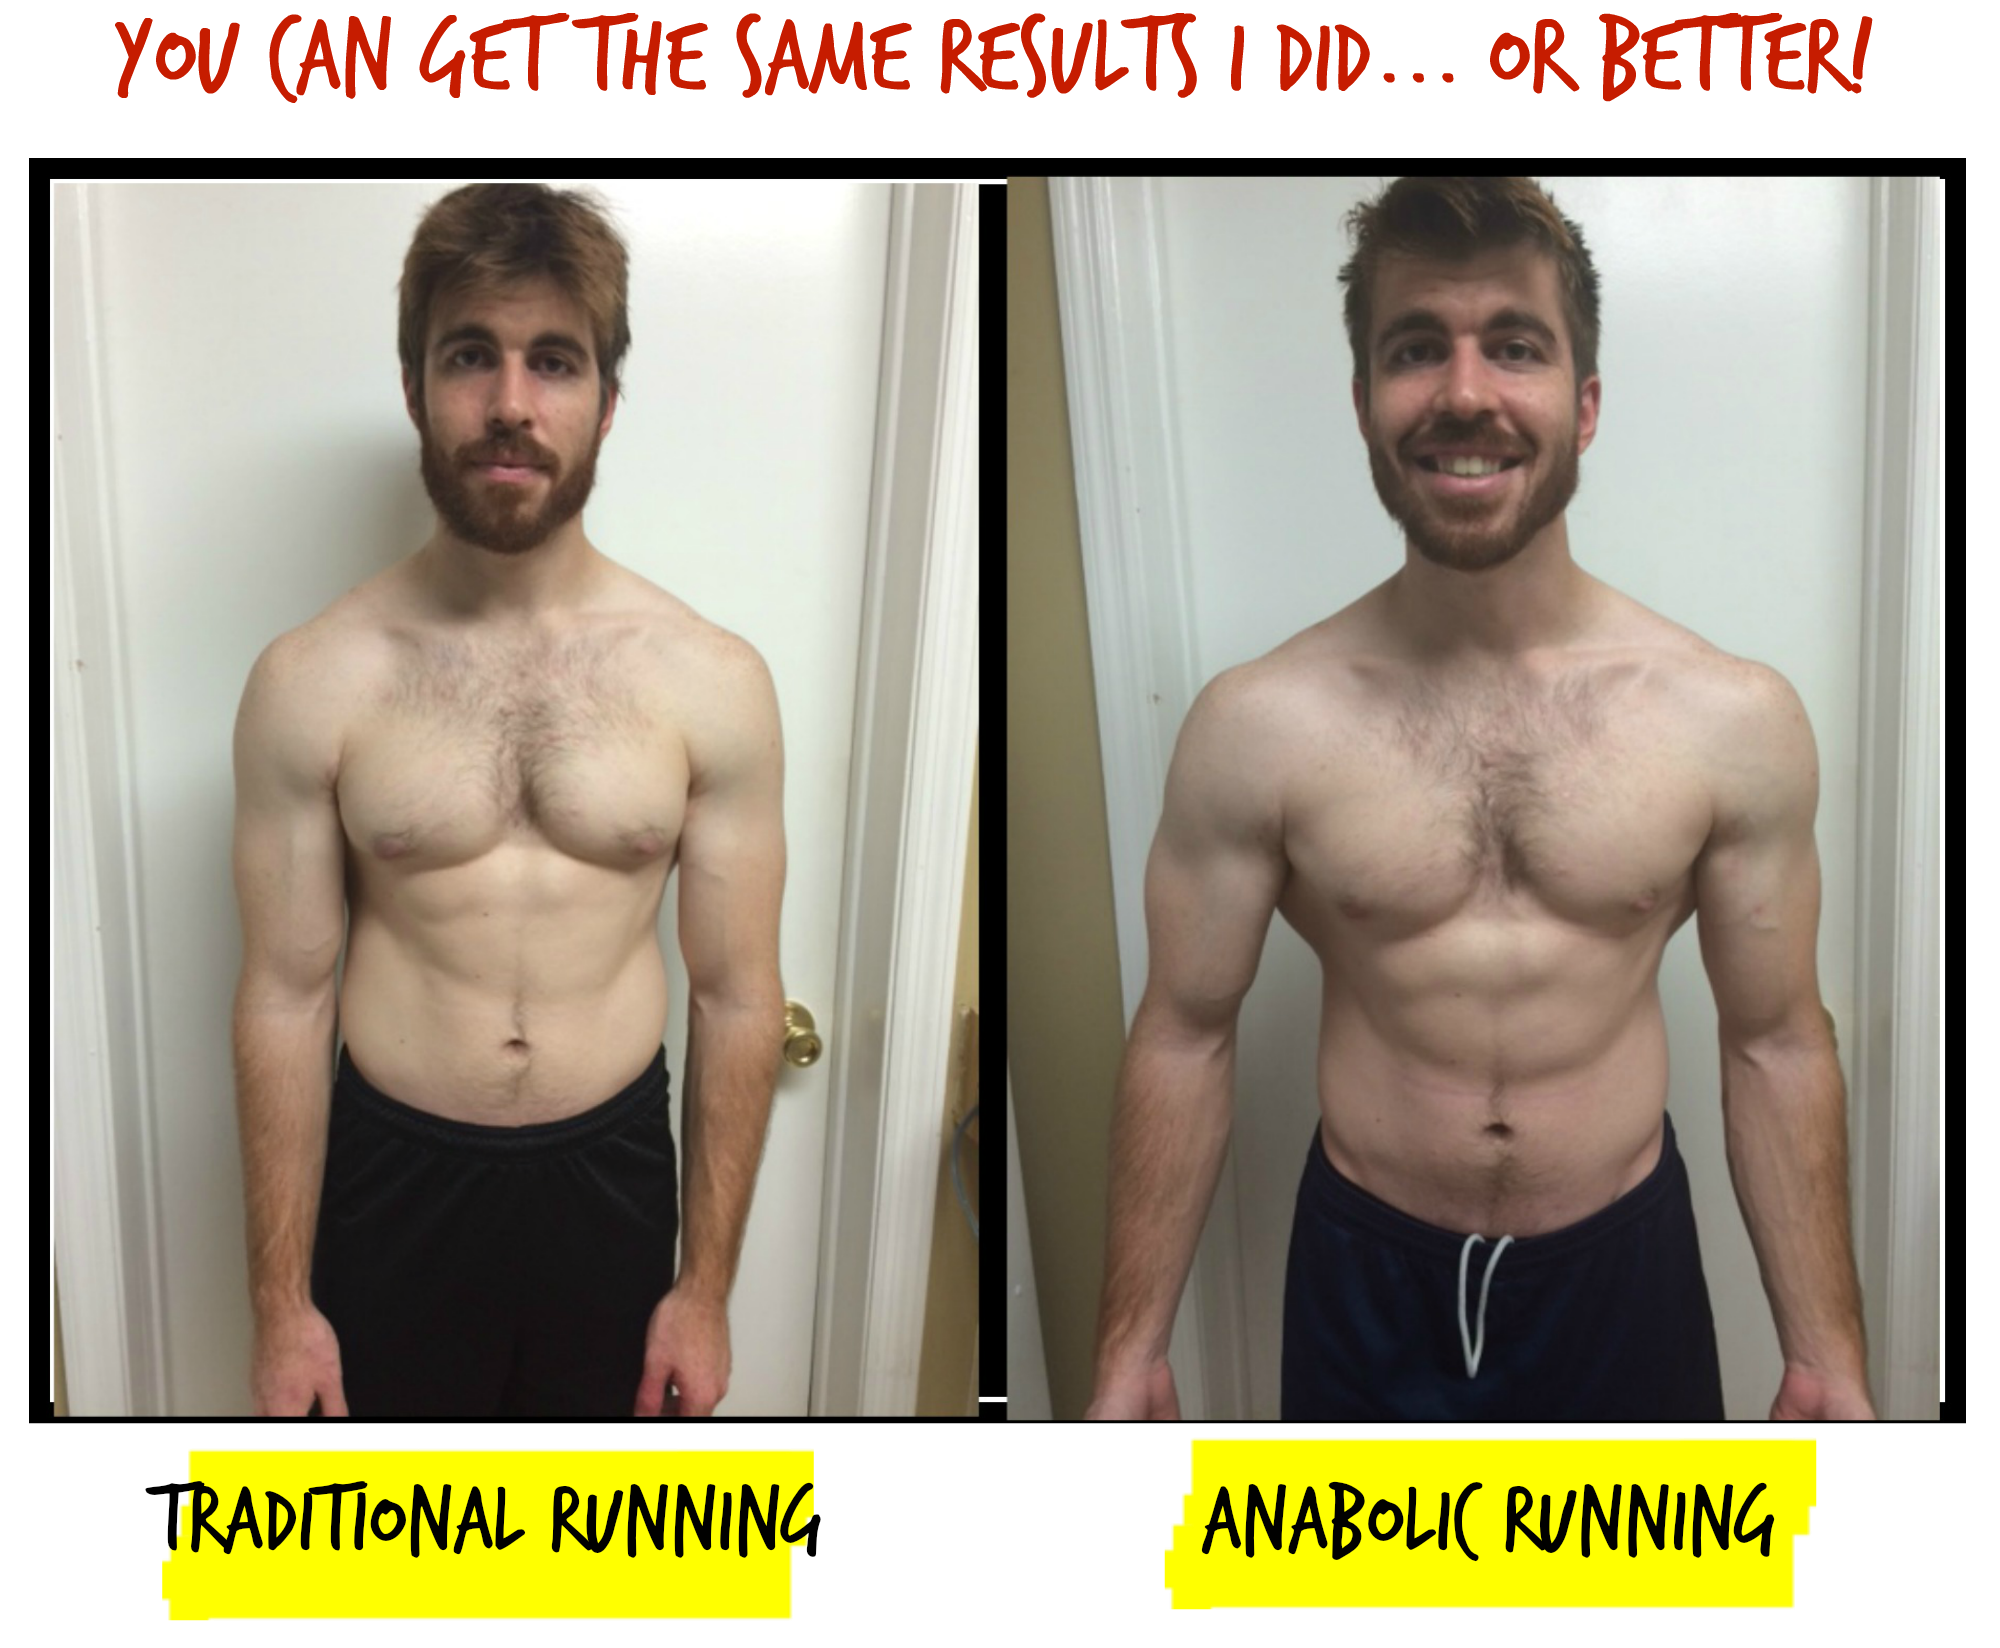 Anabolic Running results